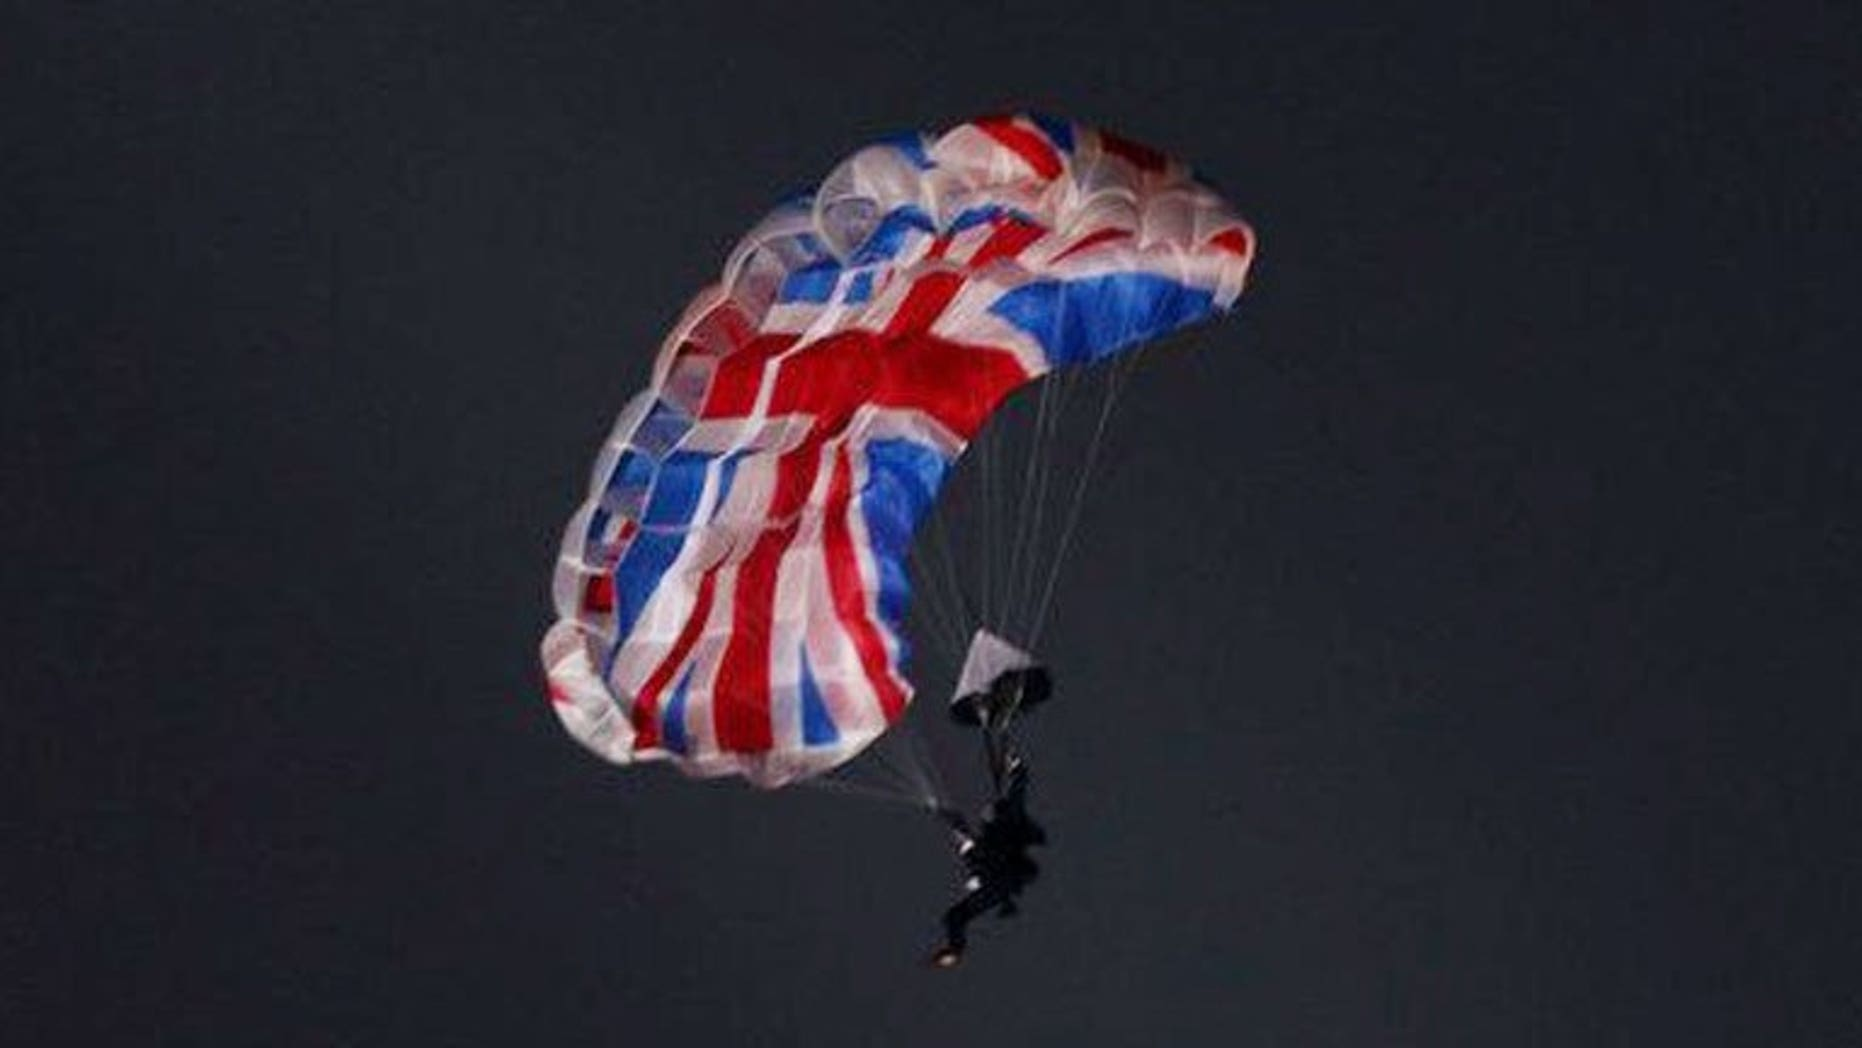 Mark Sutton, a stuntman playing the role of Daniel Craig as James Bond, parachutes out of a helicopter during the London Olympics opening ceremony on July 27, 2012. Sutton has died while wing-diving in Switzerland, British press reported Thursday.